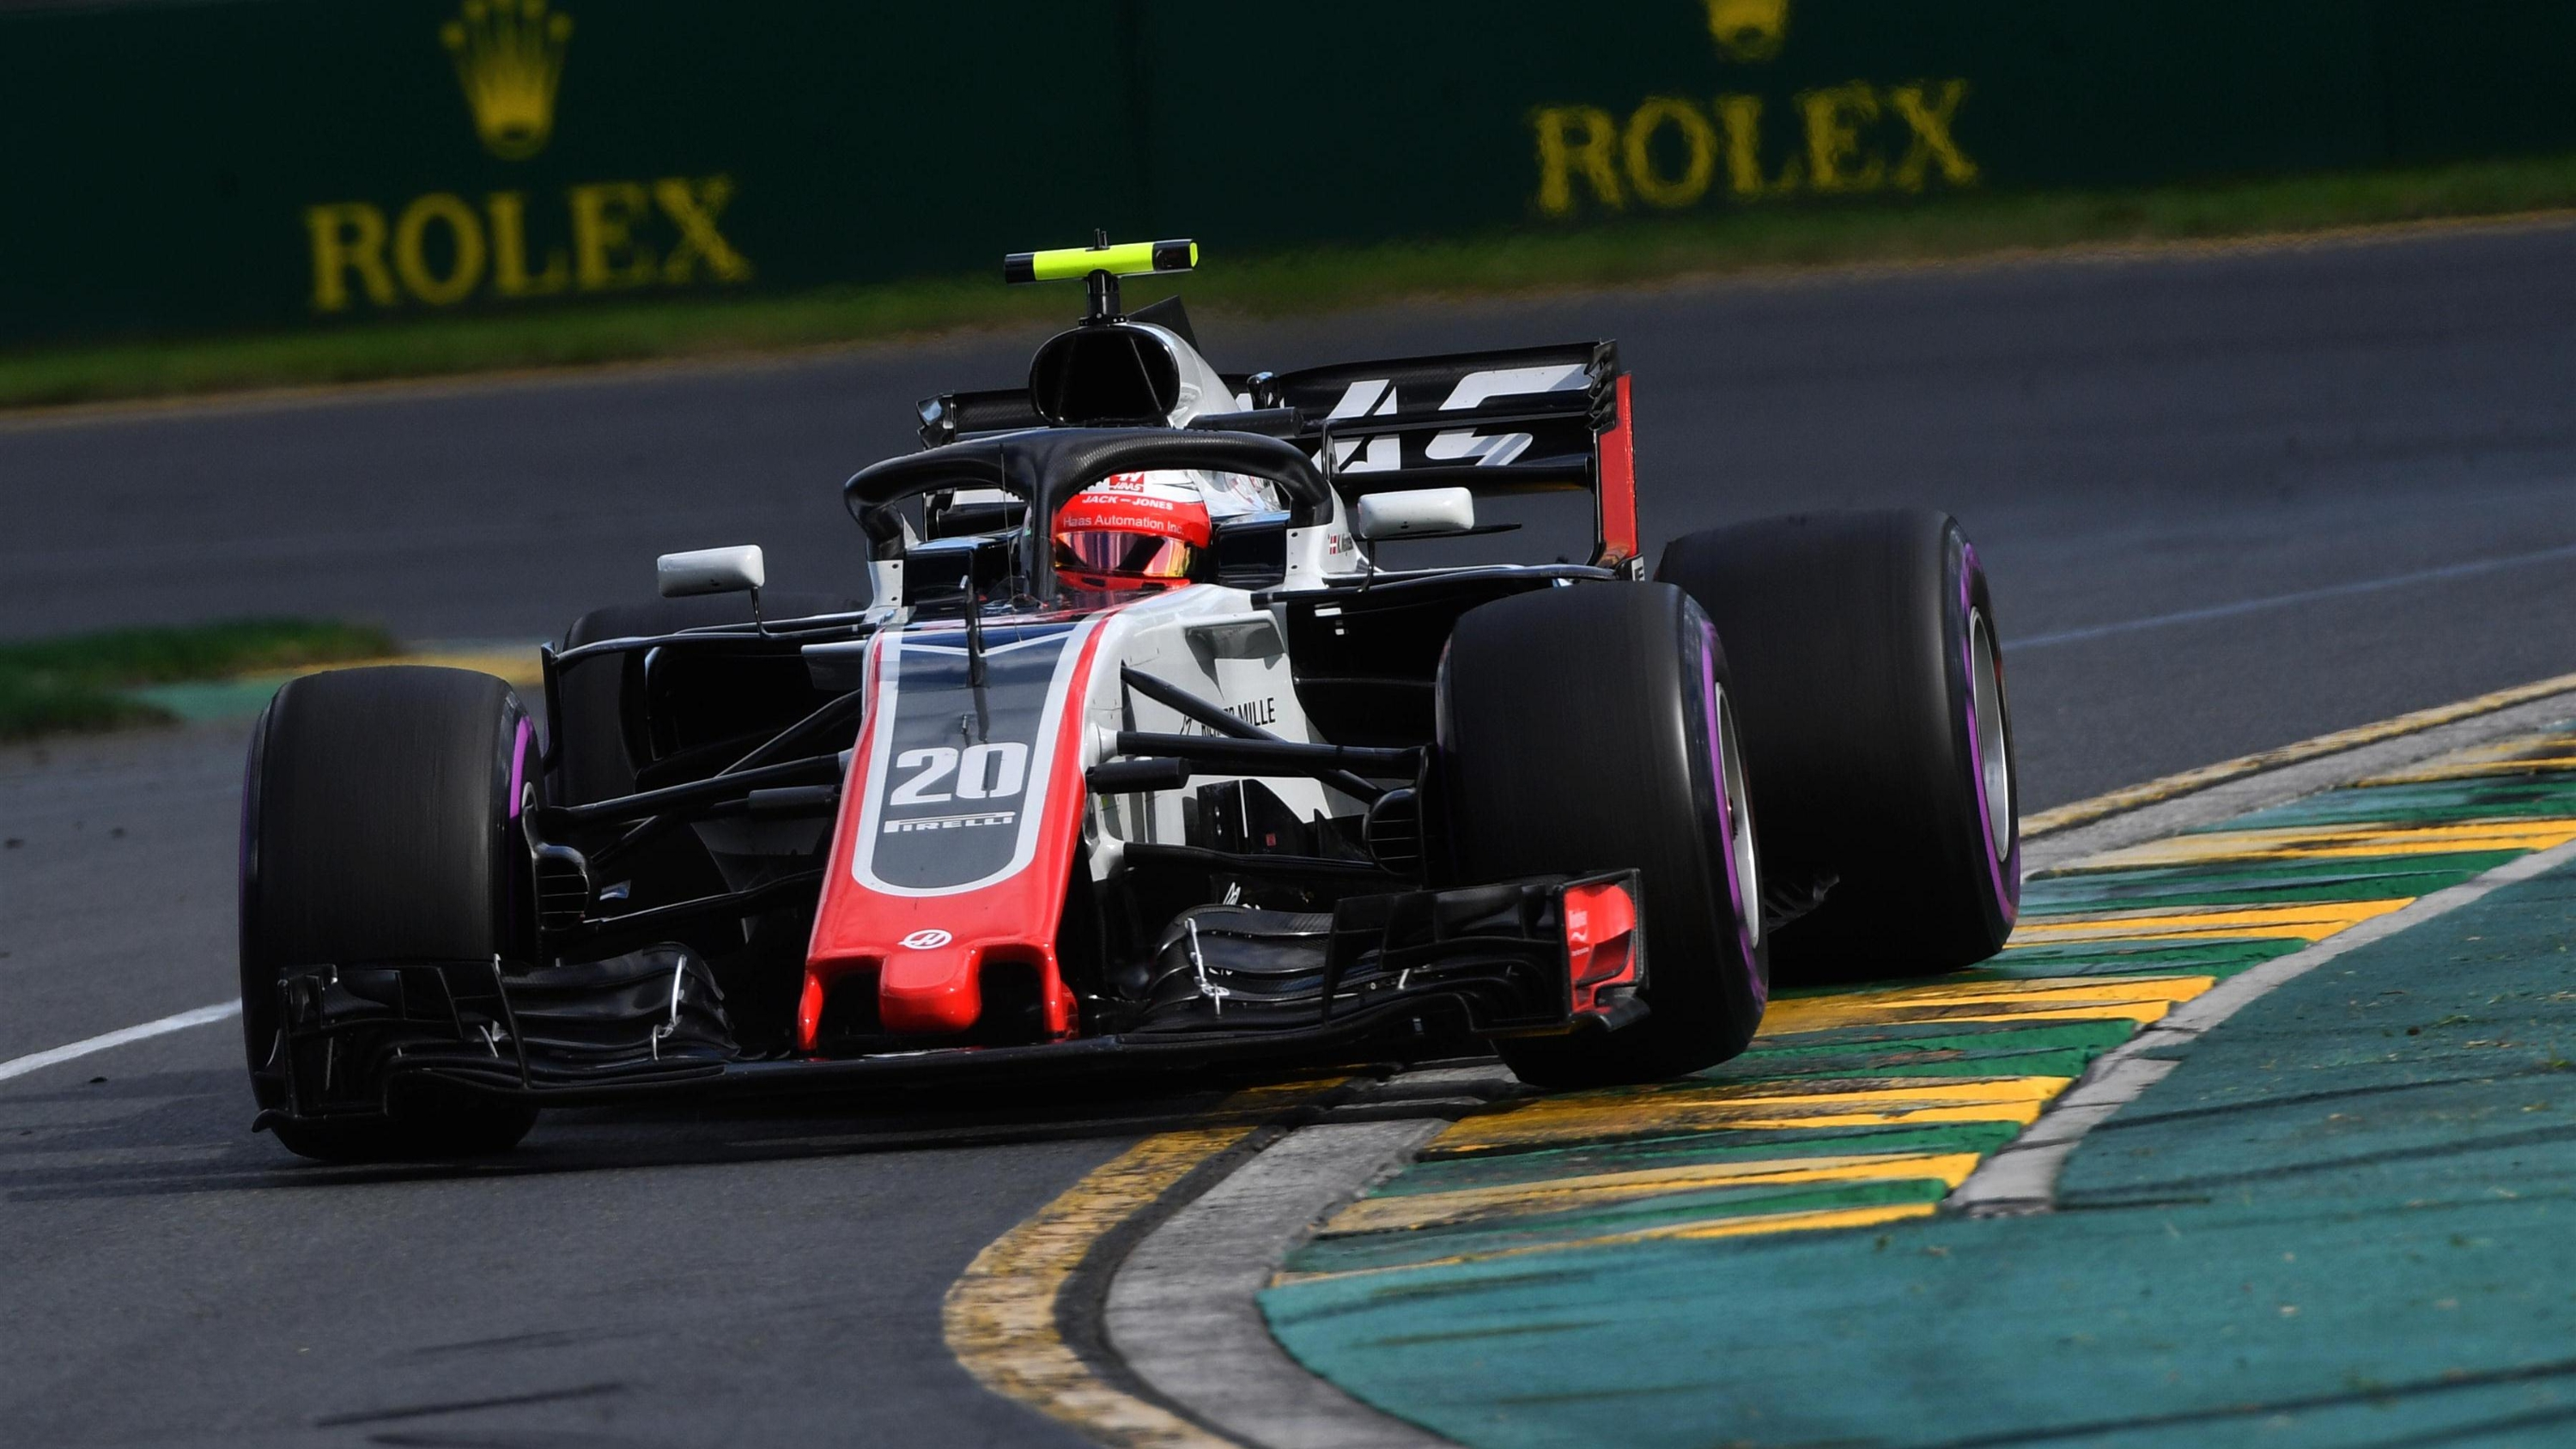 Haas F1 team hit back at rivals' criticism